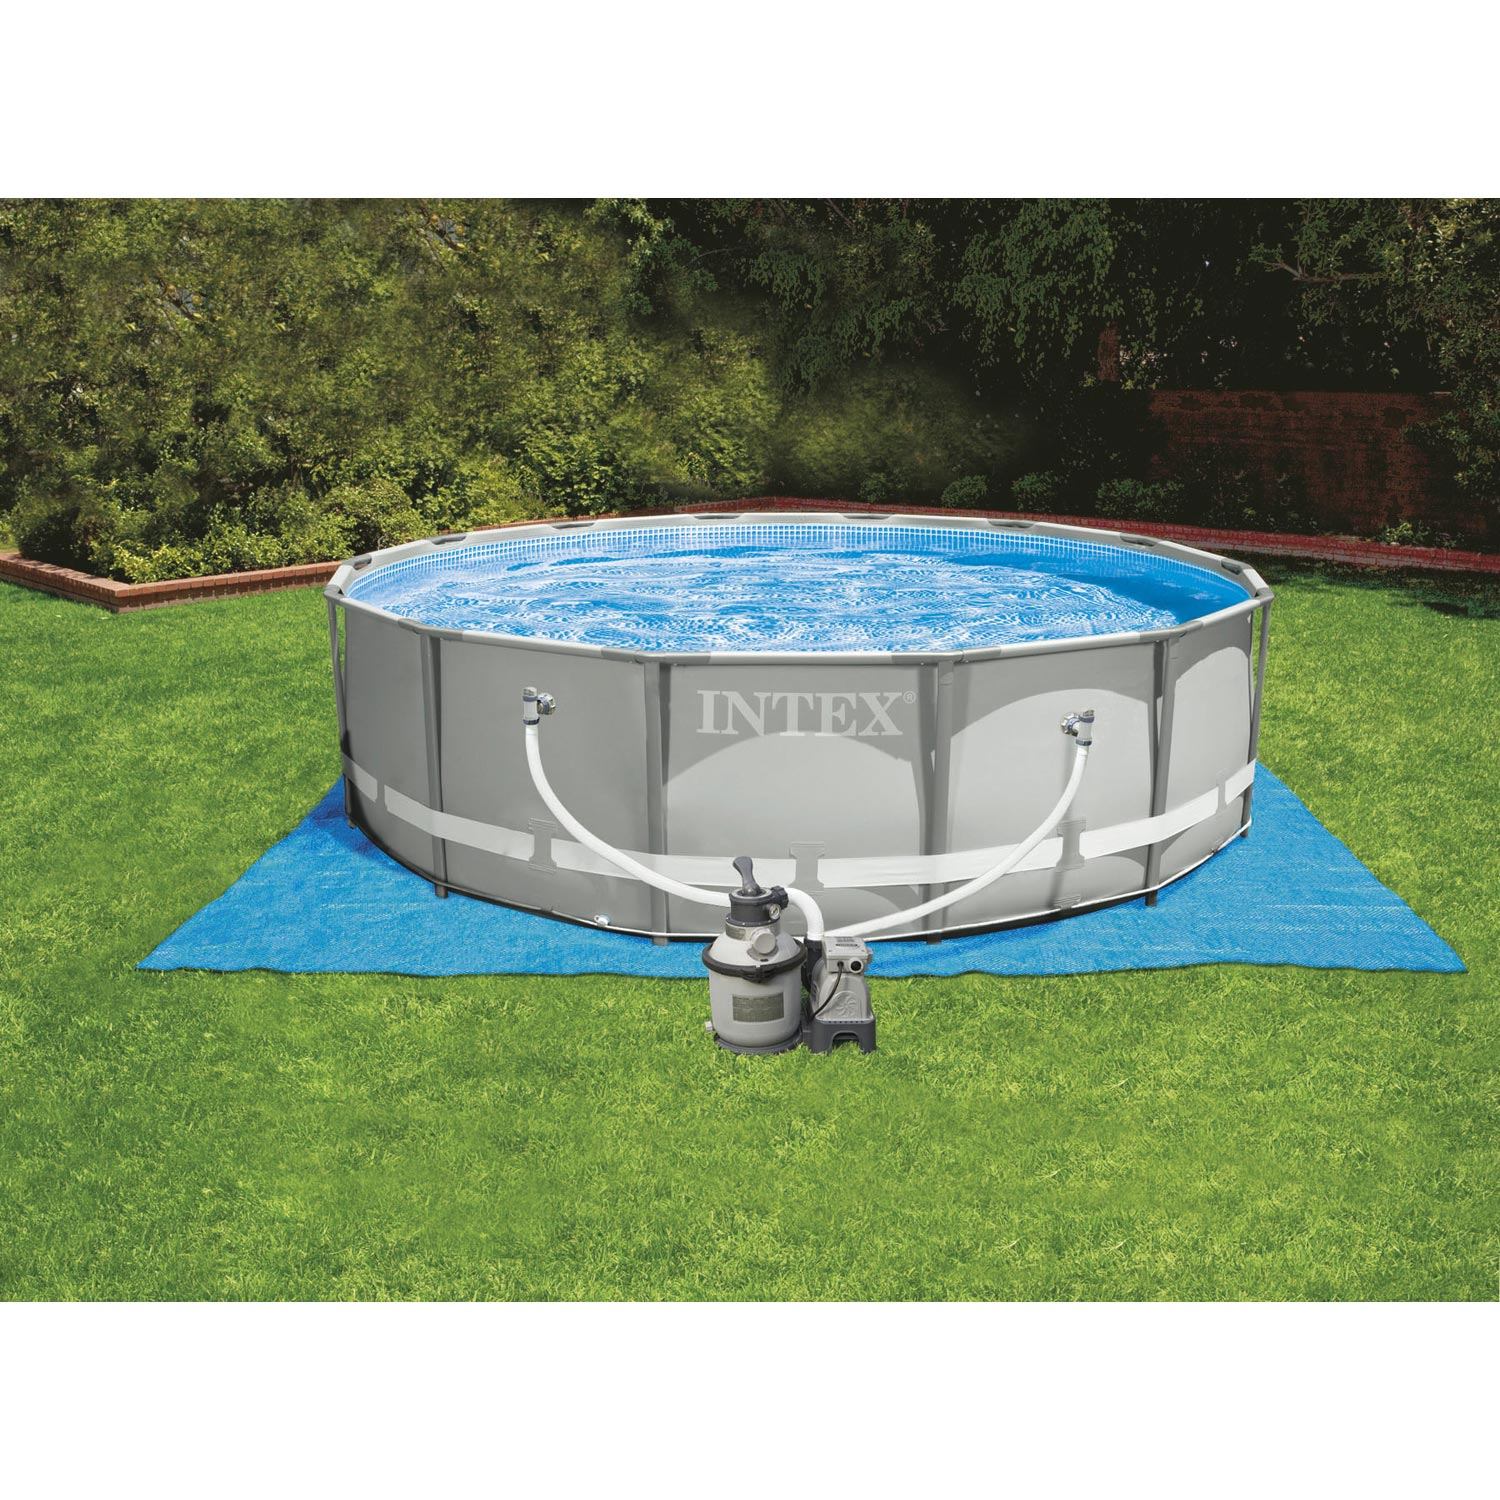 Decoration Piscine Hors Sol: Piscine Hors-sol Autoportante Tubulaire Ultra Frame INTEX